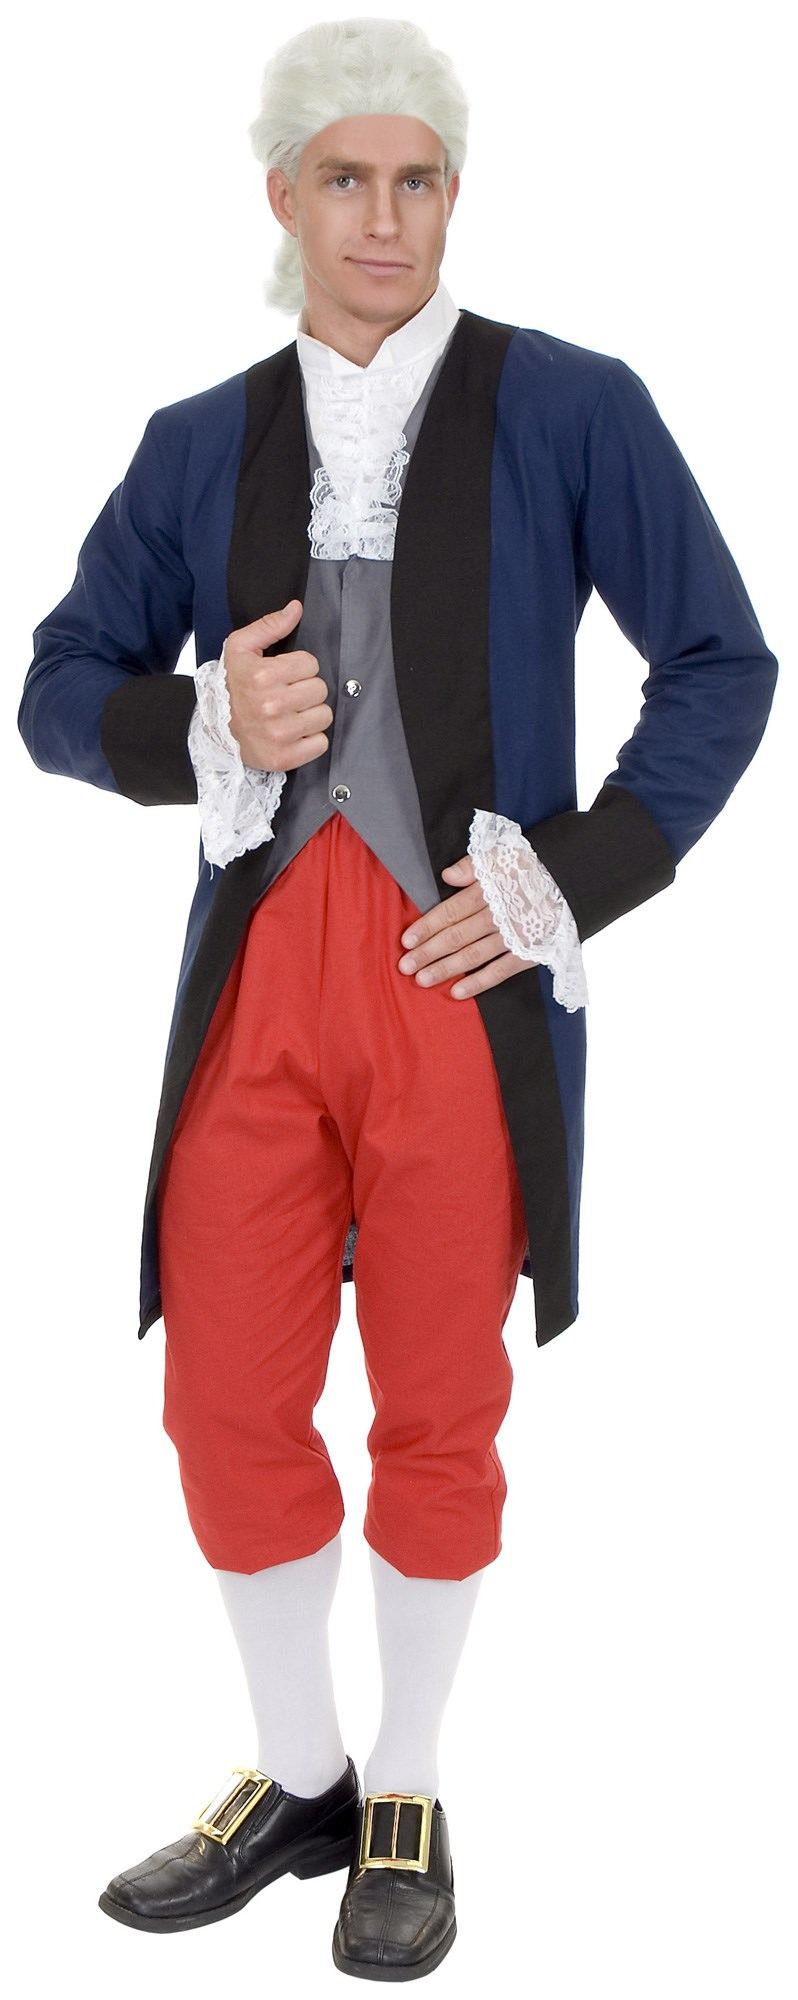 Image of Ben Franklin Colonial Man Adult Costume